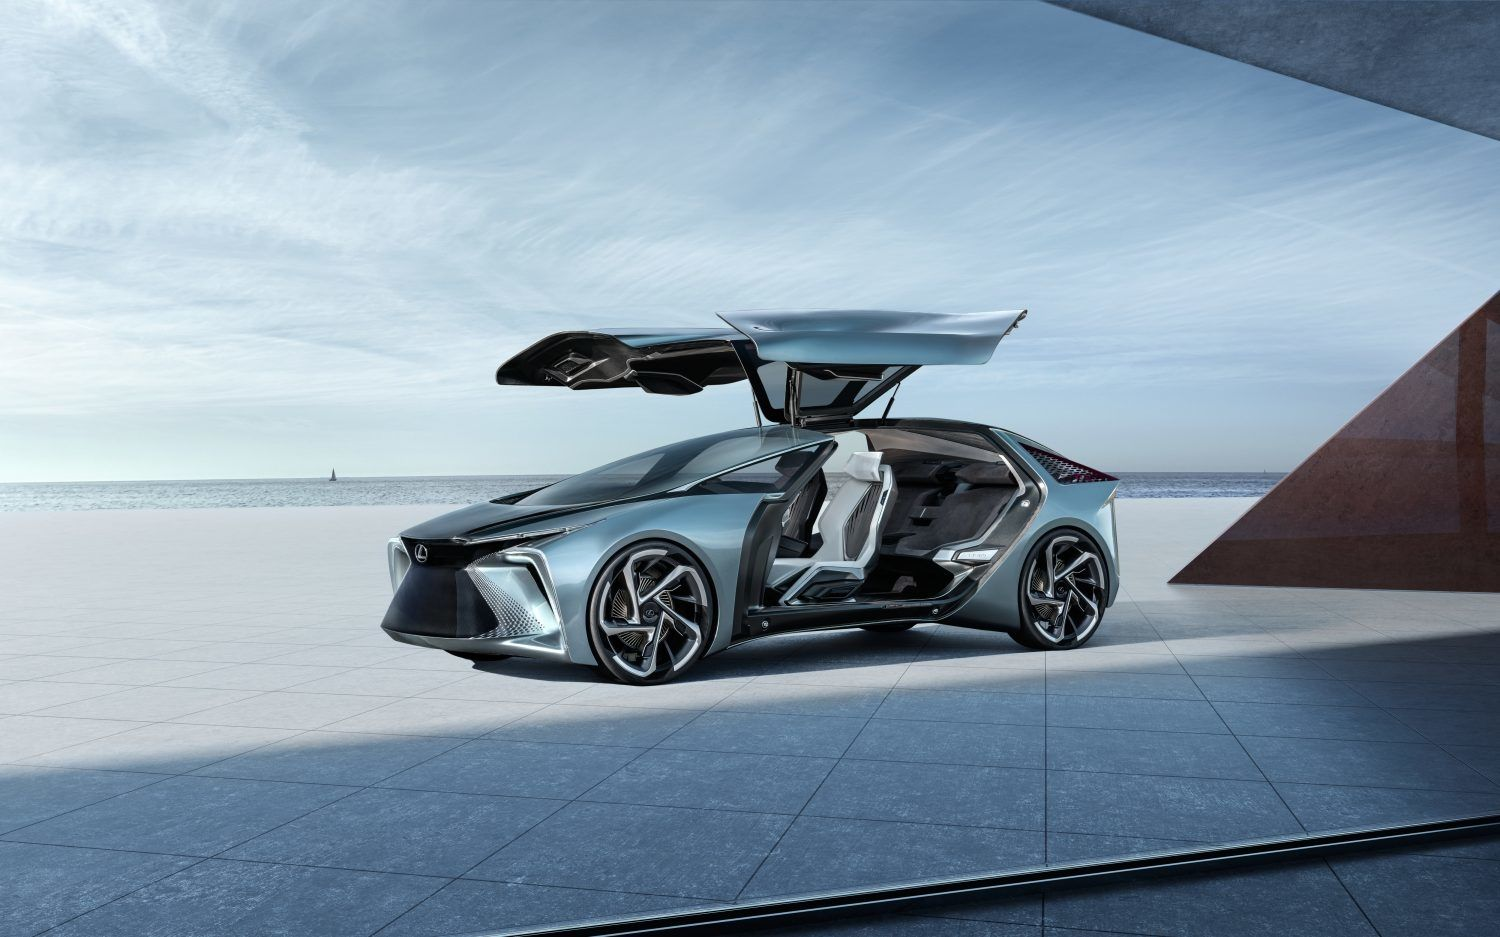 Lexus's EV Future May Look To In-Wheel Motors, Onboard Drone Support